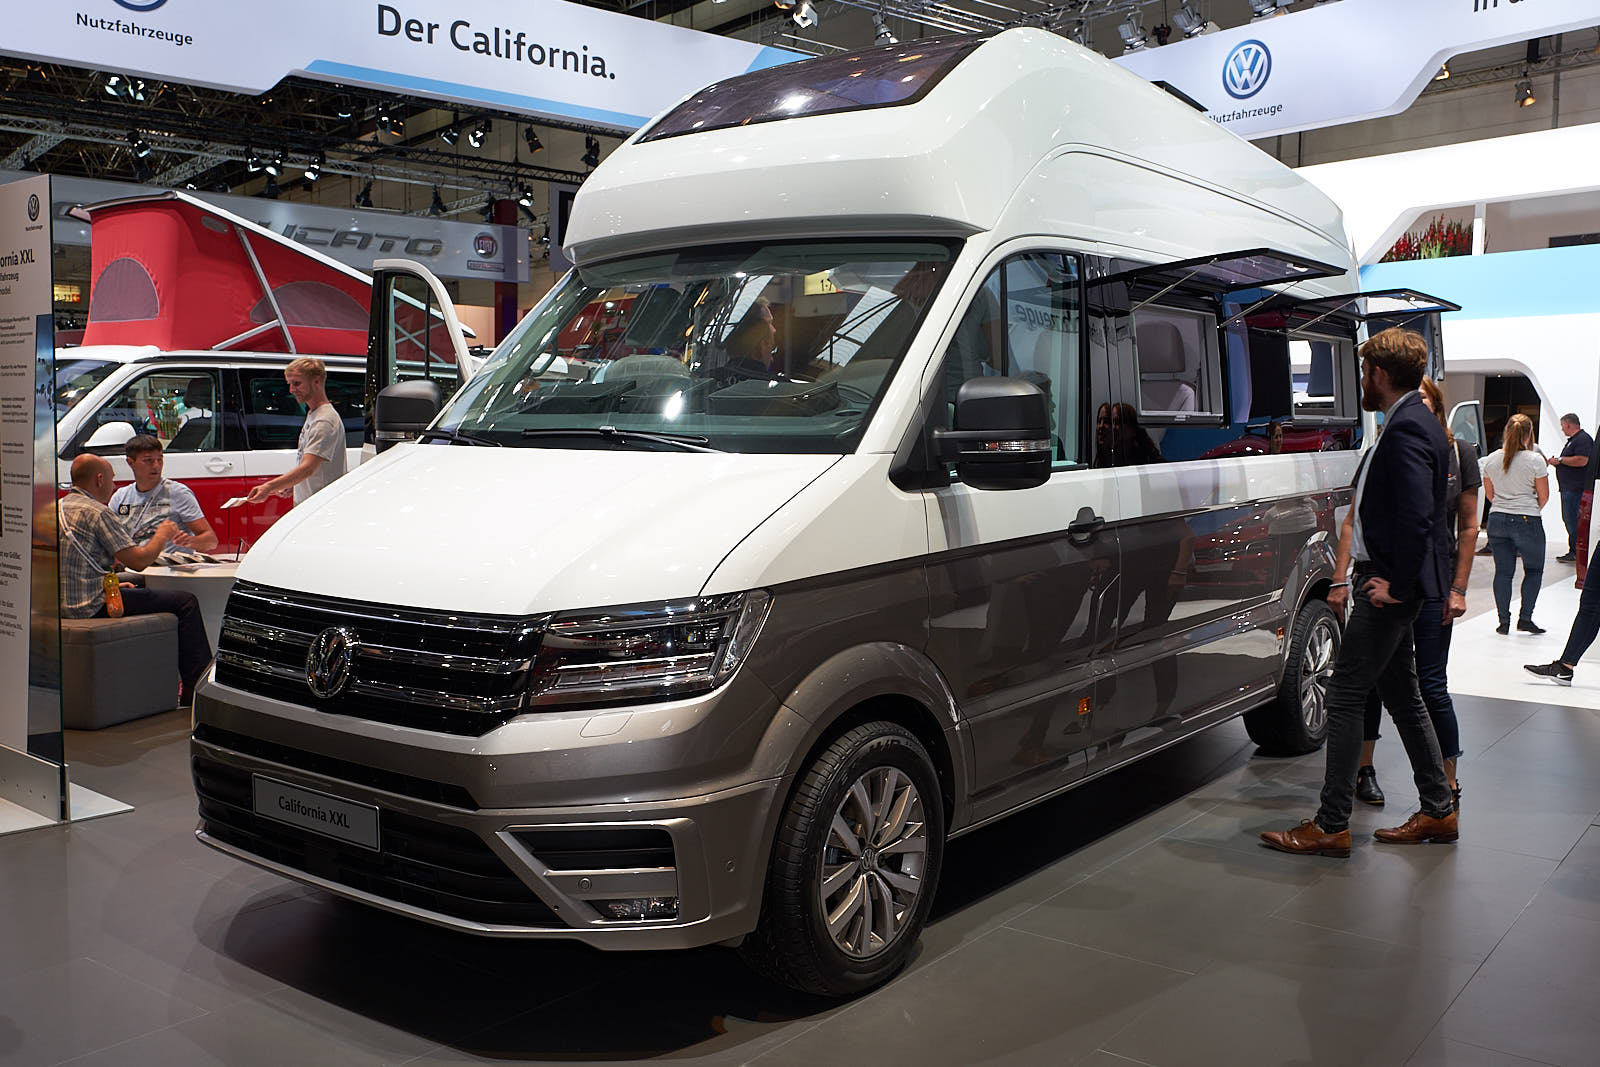 VW California XXL Studie